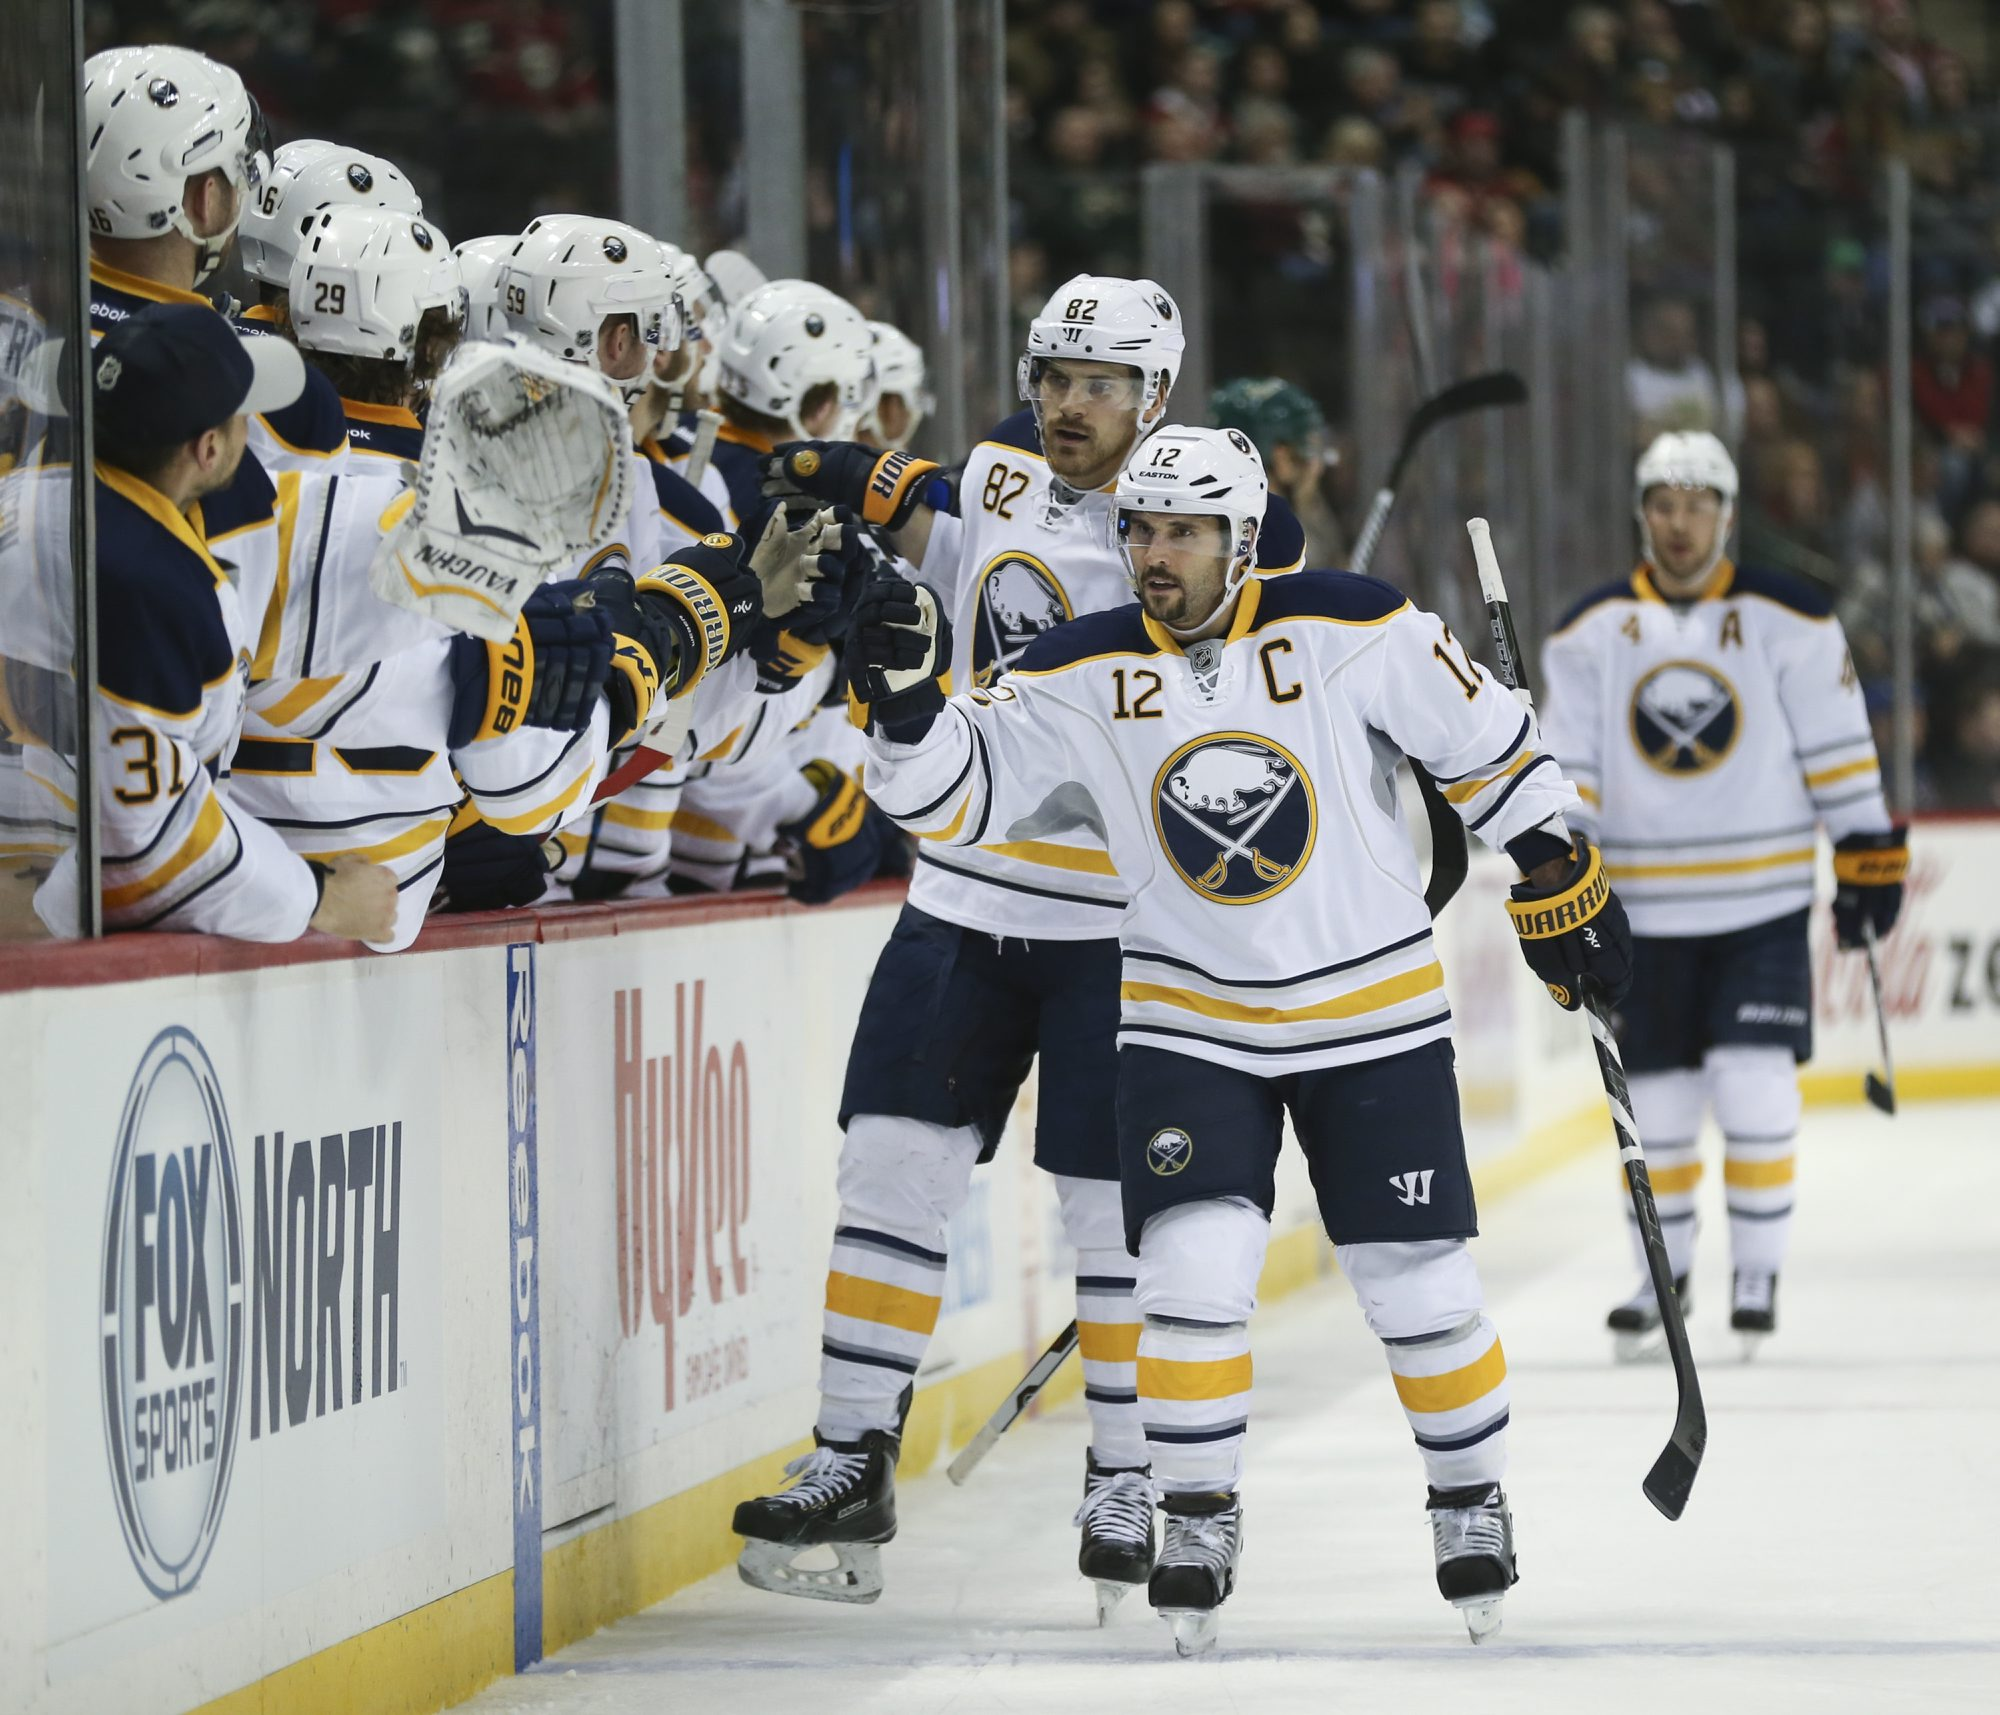 Buffalo Sabres right wing Brian Gionta (12) is congratulated by the bench after his first-period goal at Xcel Energy Center in St. Paul. (Jeff Wheeler/Star Tribune)